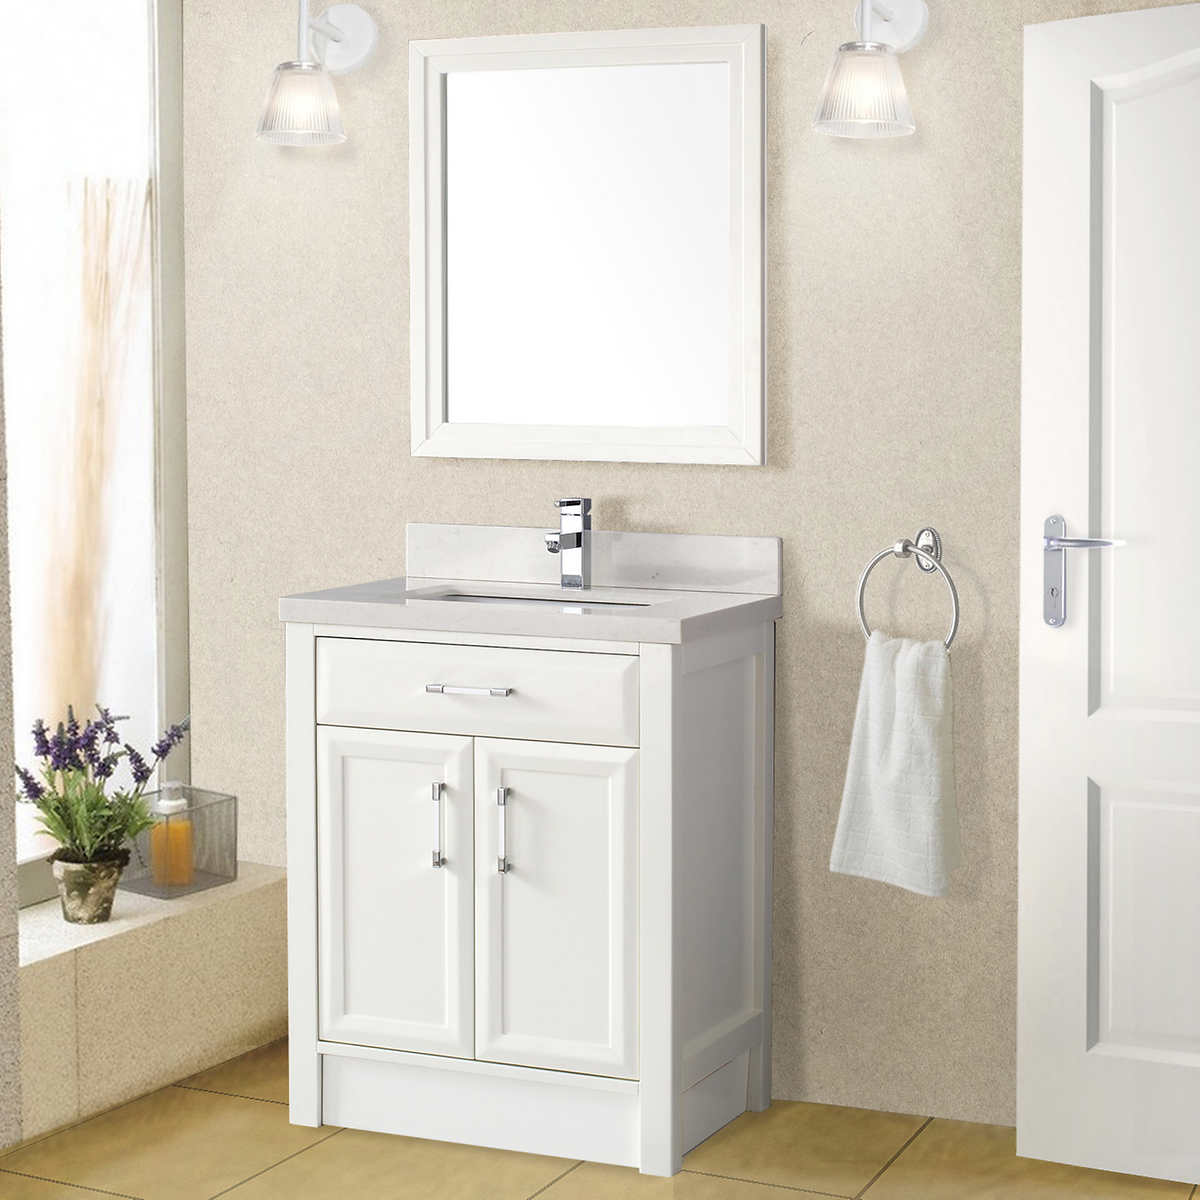 costco bathroom vanities white it is a dark brown wood vanity with a porcelain sink and an how. Black Bedroom Furniture Sets. Home Design Ideas